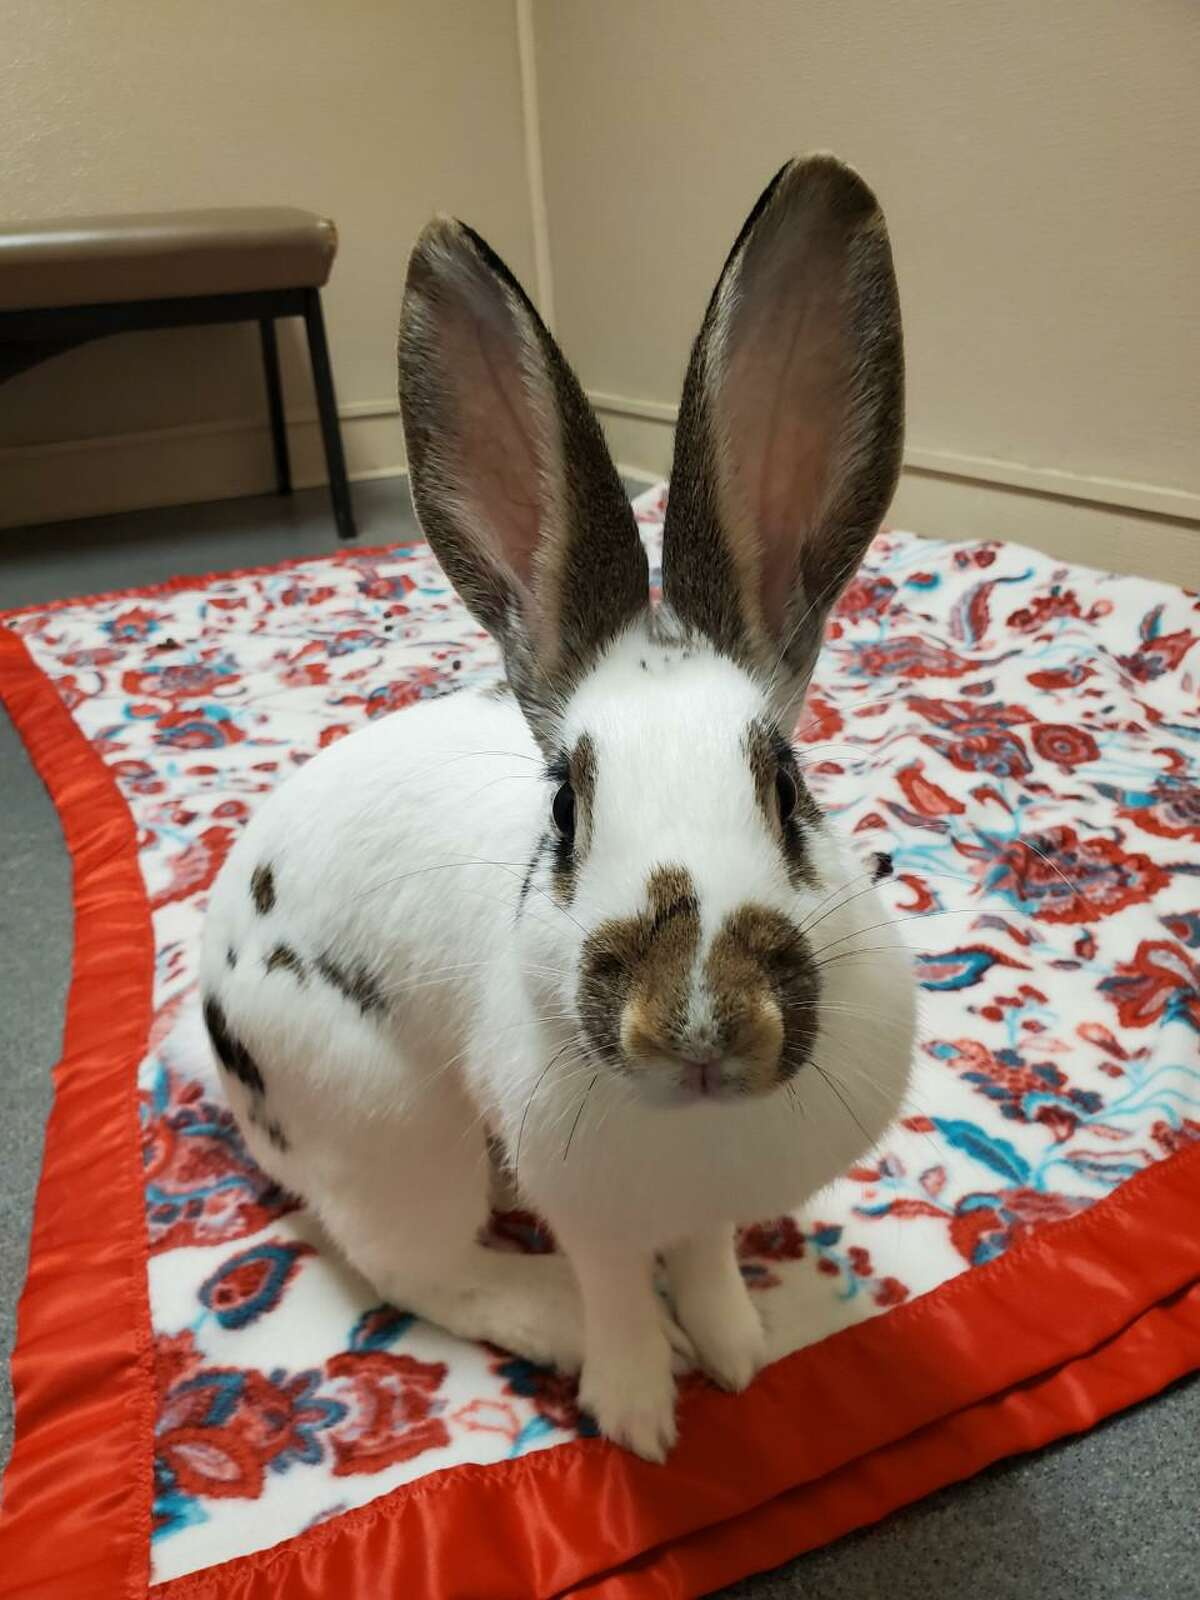 If you think small animals can't have big personalities, Spots is one of those pets. This 7-month-old bunny is quite the entertainer. She loves to climb into your lap, and even climb to your shoulder. She can jump gates. Spots was found outdoors and thankfully brought to the Connecticut Humane Society, since pet rabbits can't survive on their own outside the way wild rabbits can. She's now ready for a home. This bunny will need lots of rabbit toys that are appropriate for her to chew and of course a good diet of Timothy hay, dark leafy greens, pellets and her favorite foods, like cilantro and green pepper. She's spent time in a volunteer foster home, so she is used to a home environment. Think you've got room in your home and heart for Spots (and her big ears)? Visit CThumane.org/adopt to learn more. An online application can be found in each pet's profile.